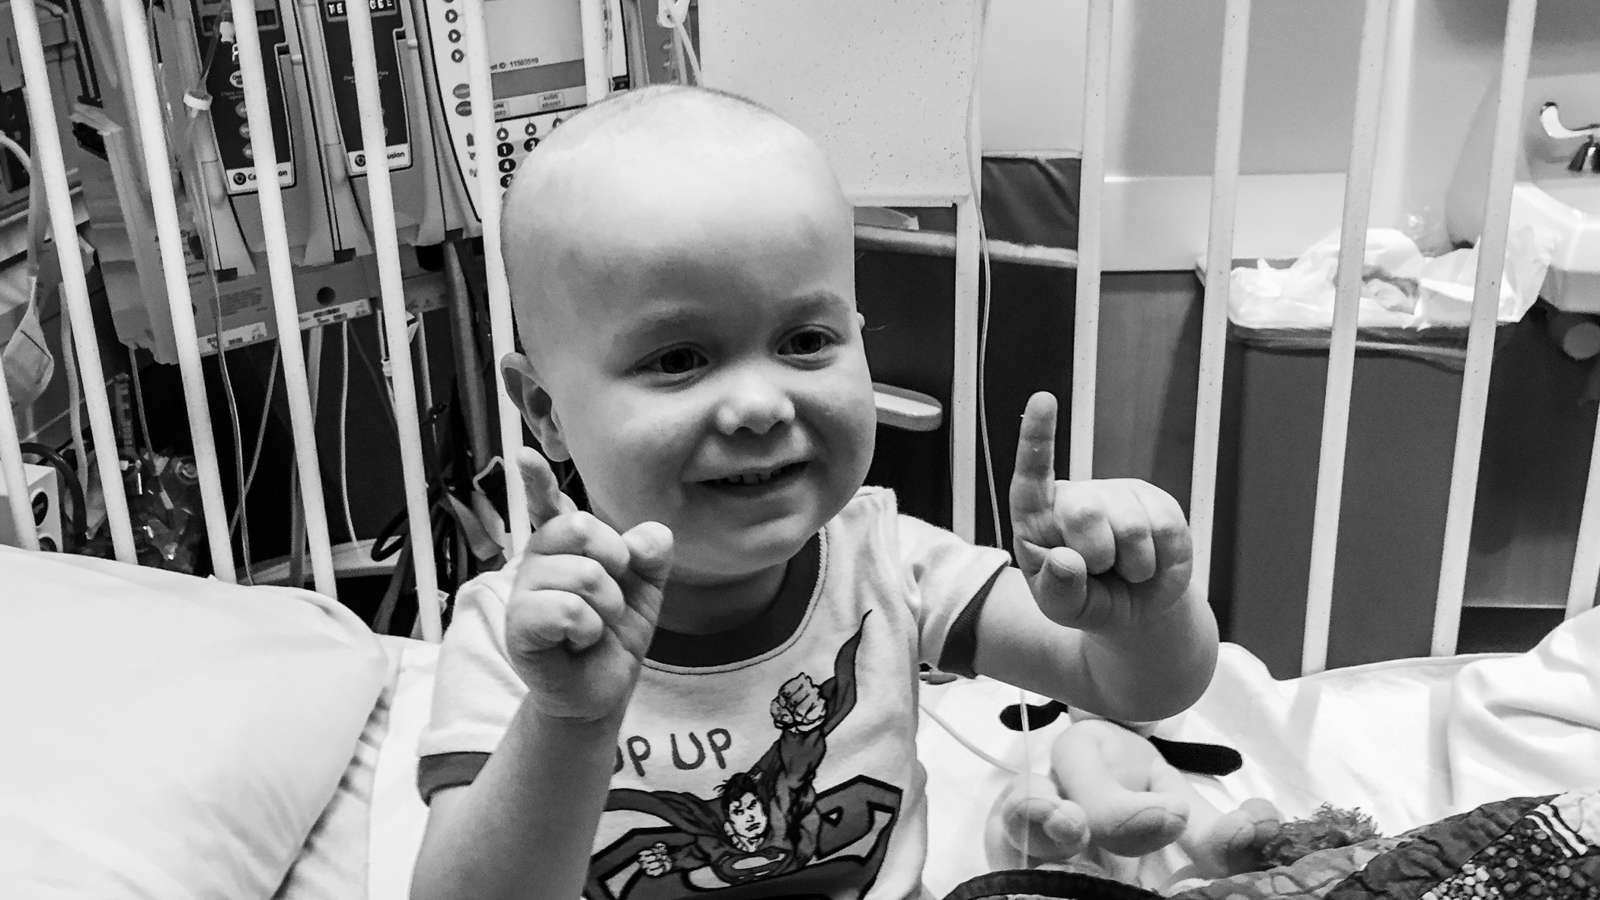 Hero: Charlie Osborn's Story with Hyper-IgM Syndrome